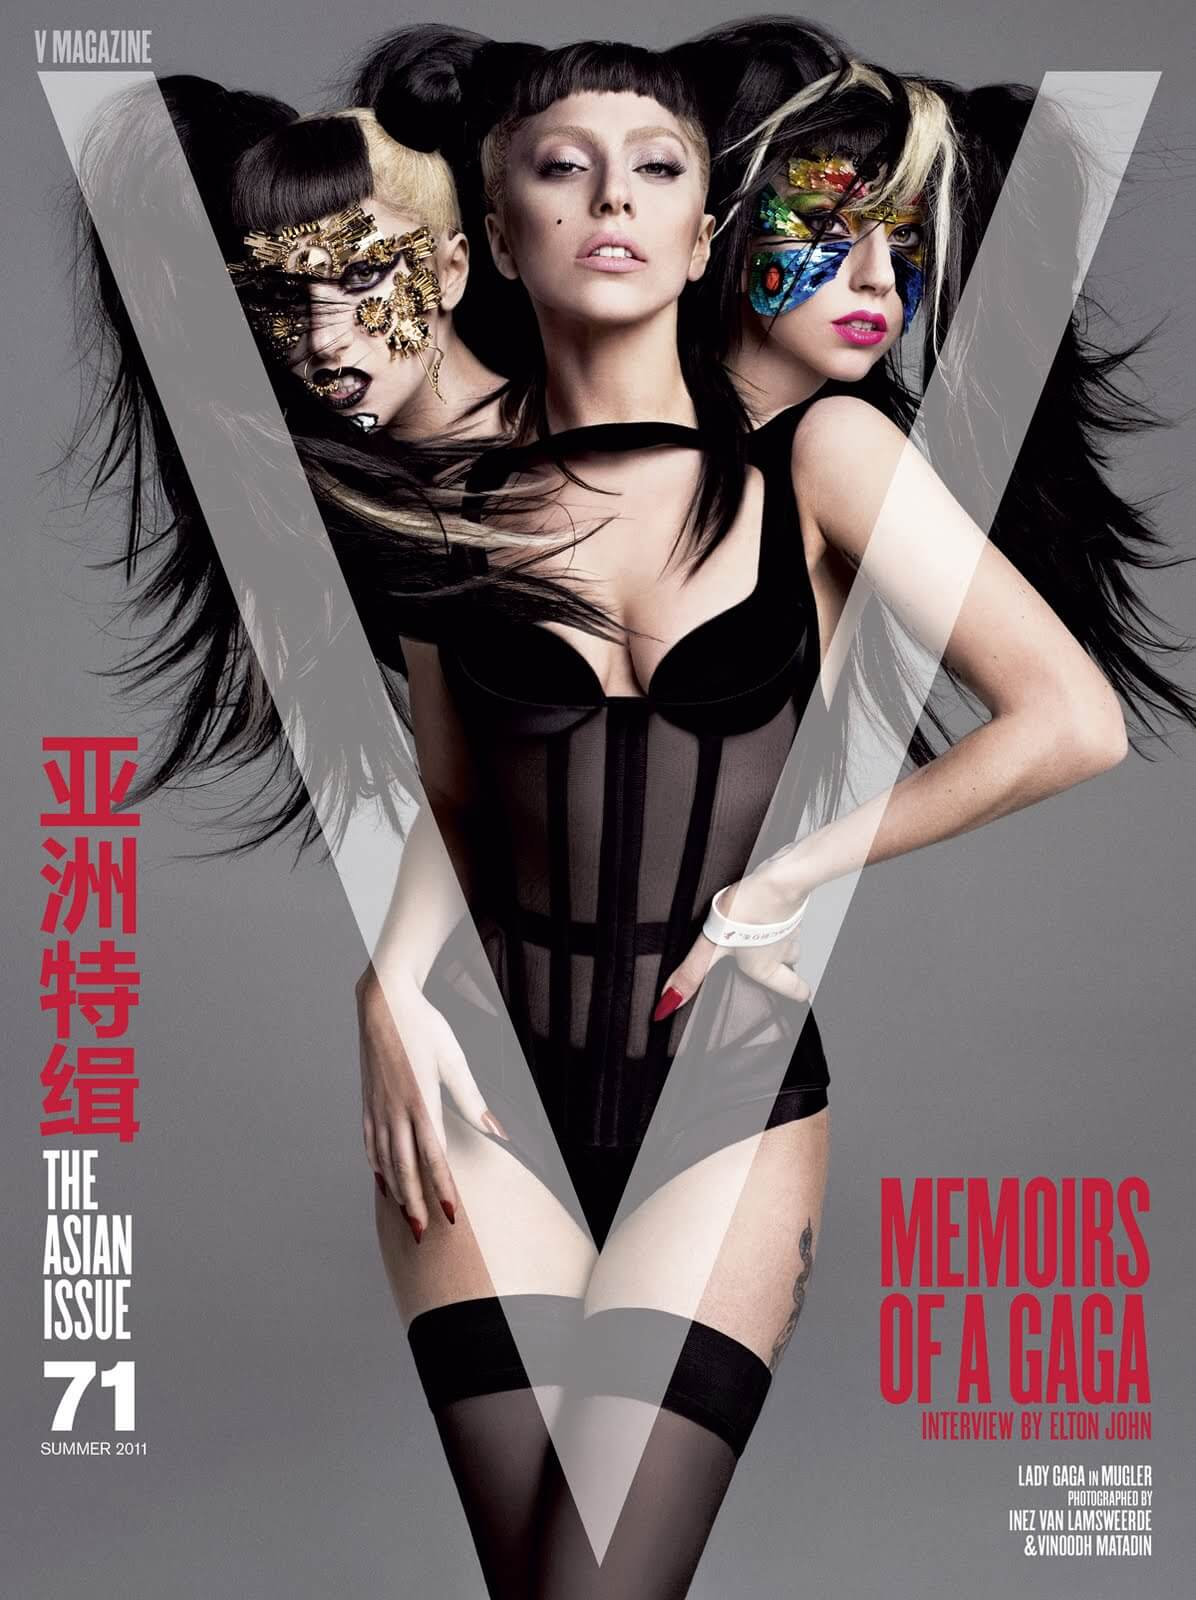 Lady Gaga's 3-headed Cover for V Magazine Issue 71: The Asian Issue (Summer 2011)